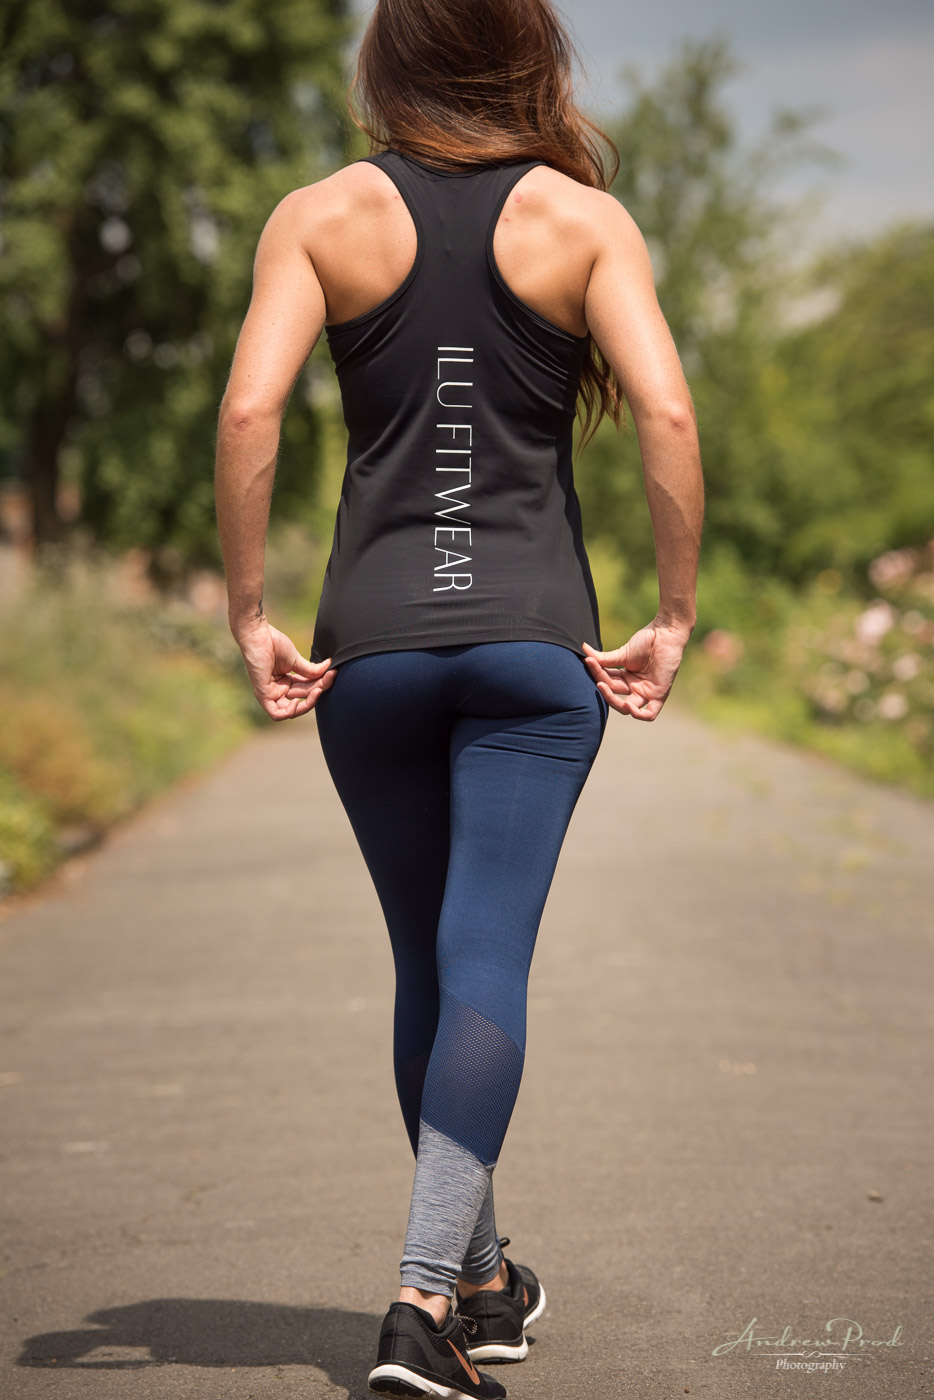 Yogawear photographer London